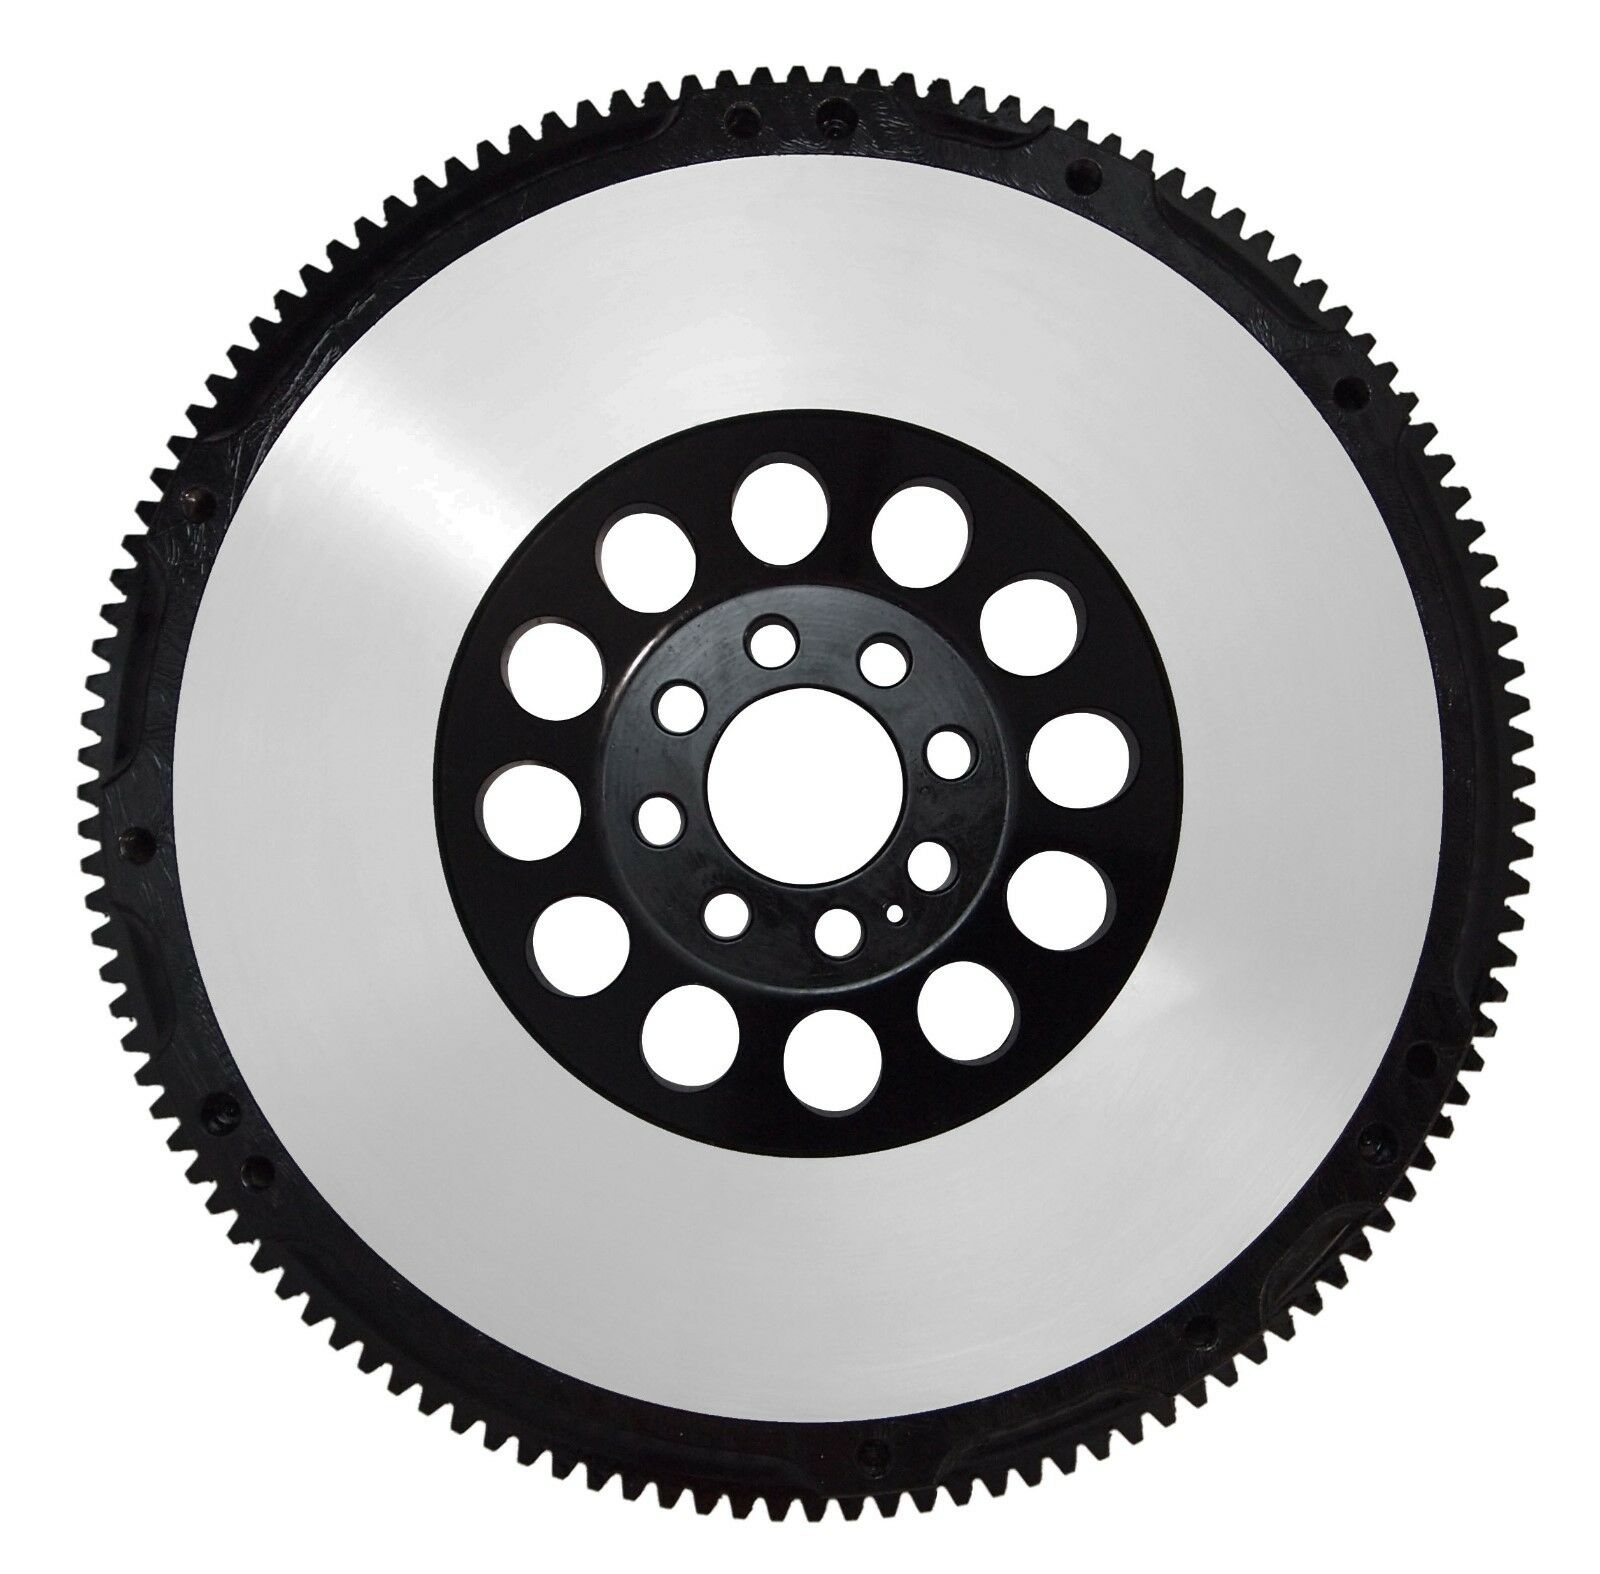 ACTION RACING FORGED CHROMOLY FLYWHEEL for NISSAN 03-06 350Z G35 3.5L VQ35DE